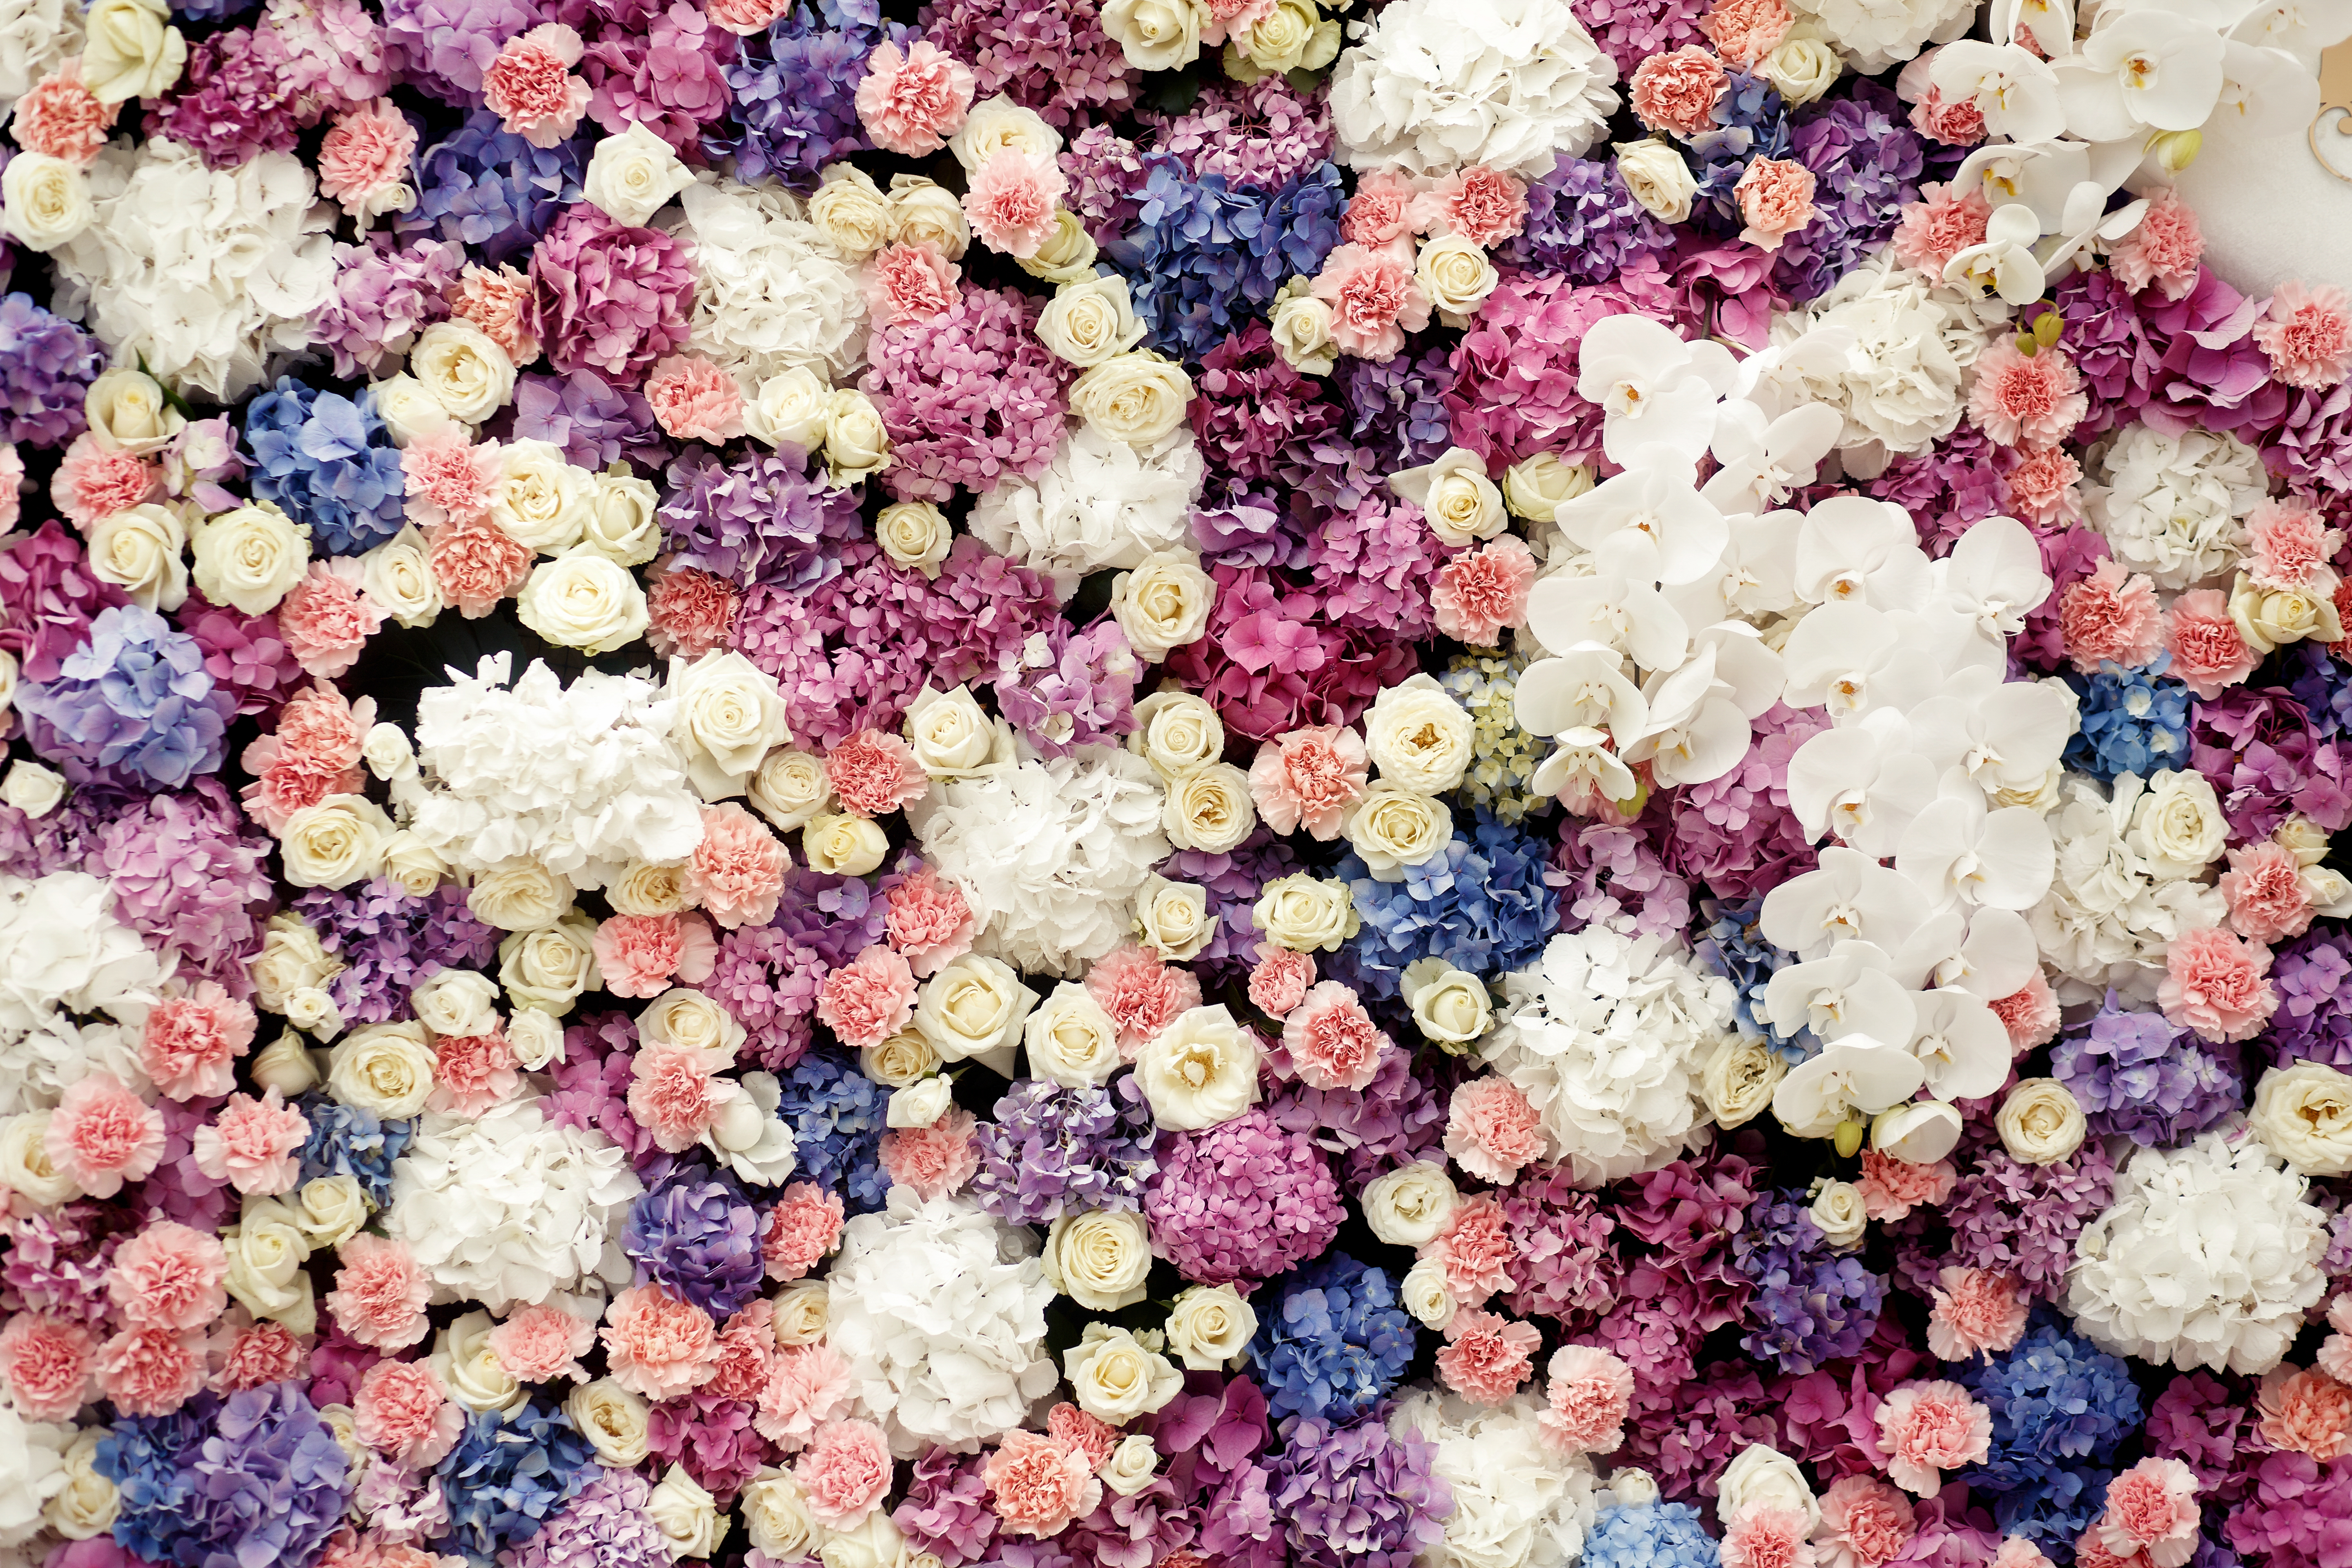 Lots of hydrangeas, roses and pinks make a colorful wall